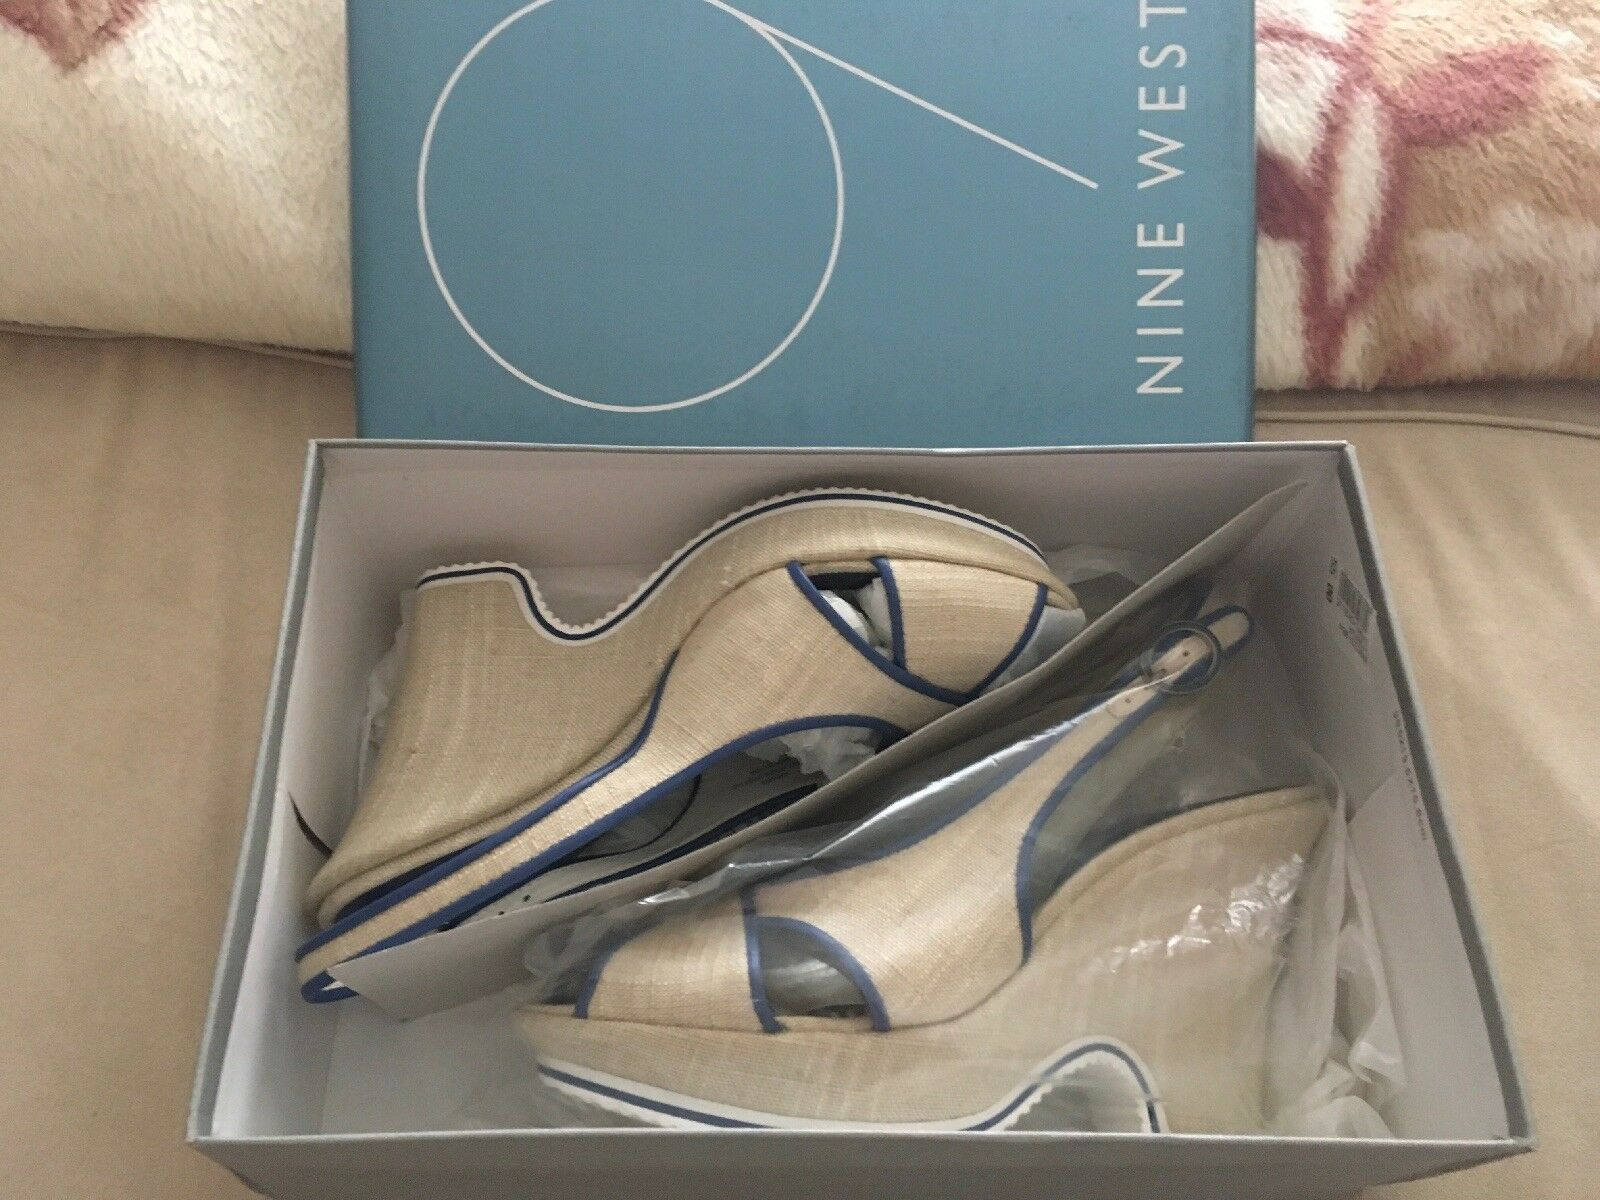 NINE WEST NWDARVA Gorgeous Canvas  Sandales UK6(US8) Schuhes Heels Ivory/Blau Größe UK6(US8) Sandales 526e02